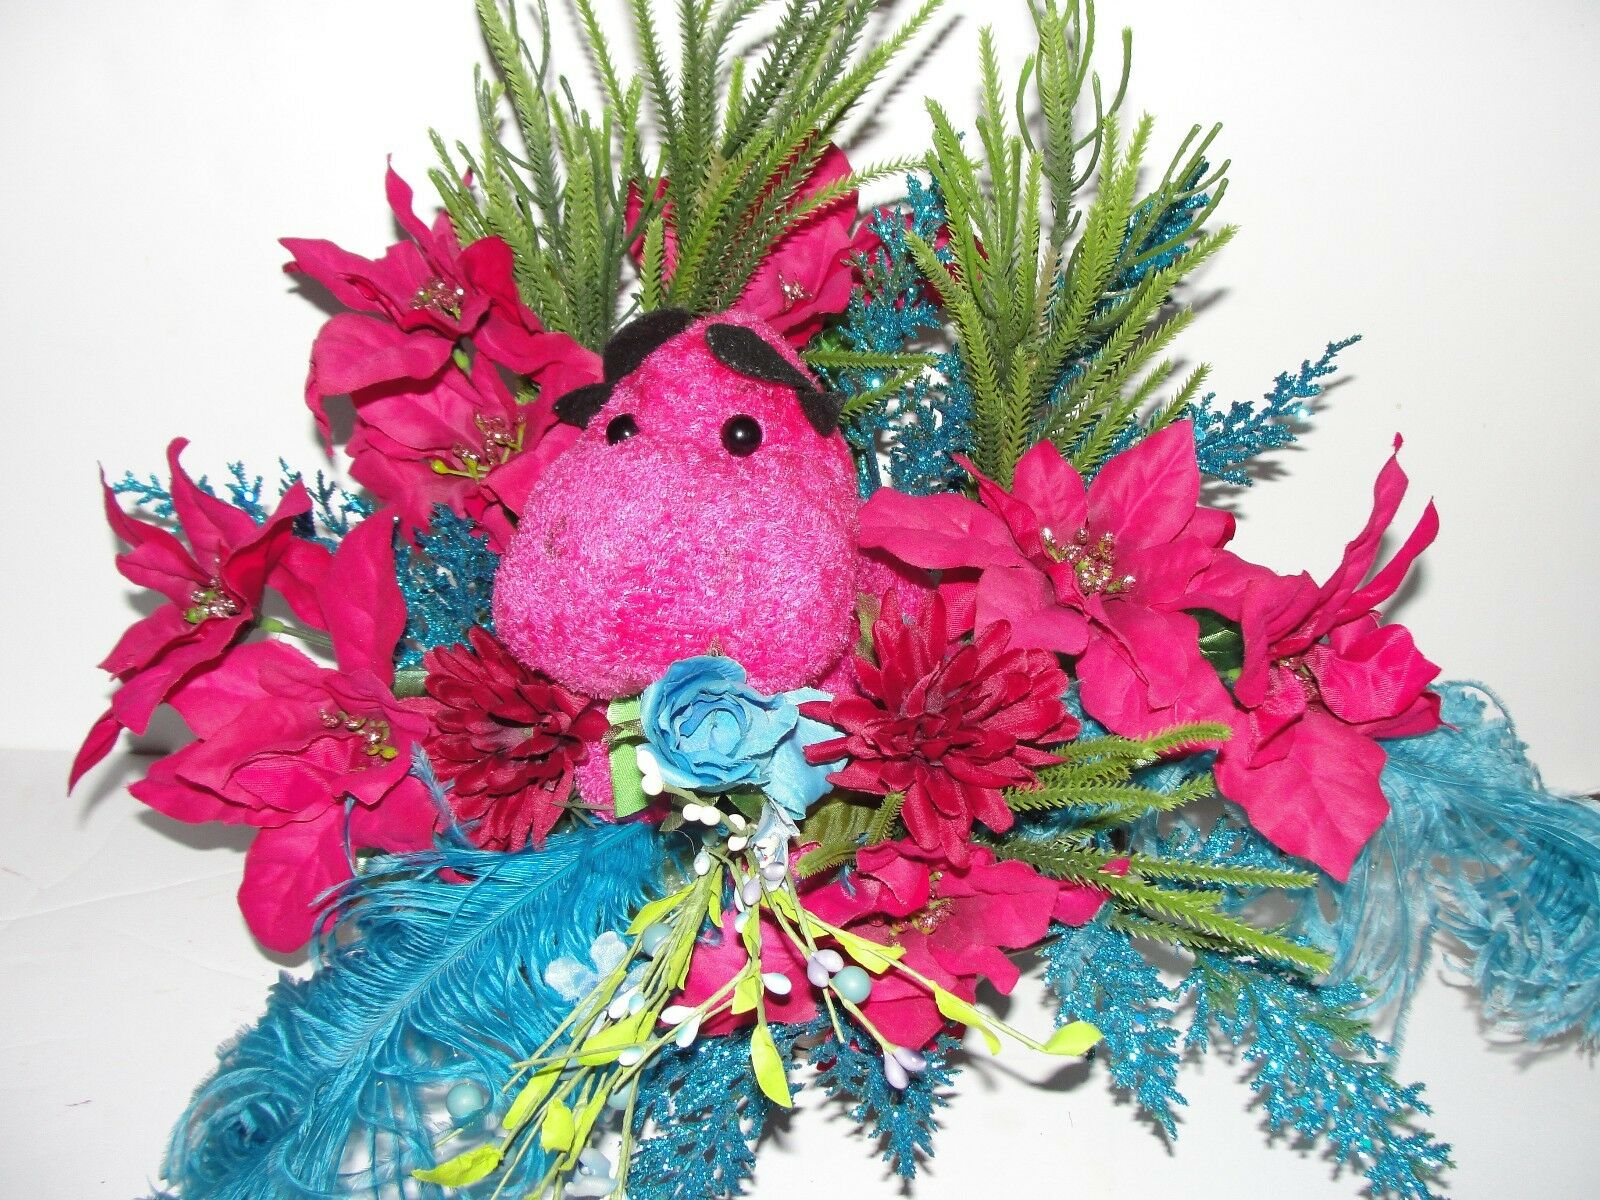 Hippopotamus for for for Christmas Valentines Day Fuchsia Rosa Silk Flower Arrangement 0d660e